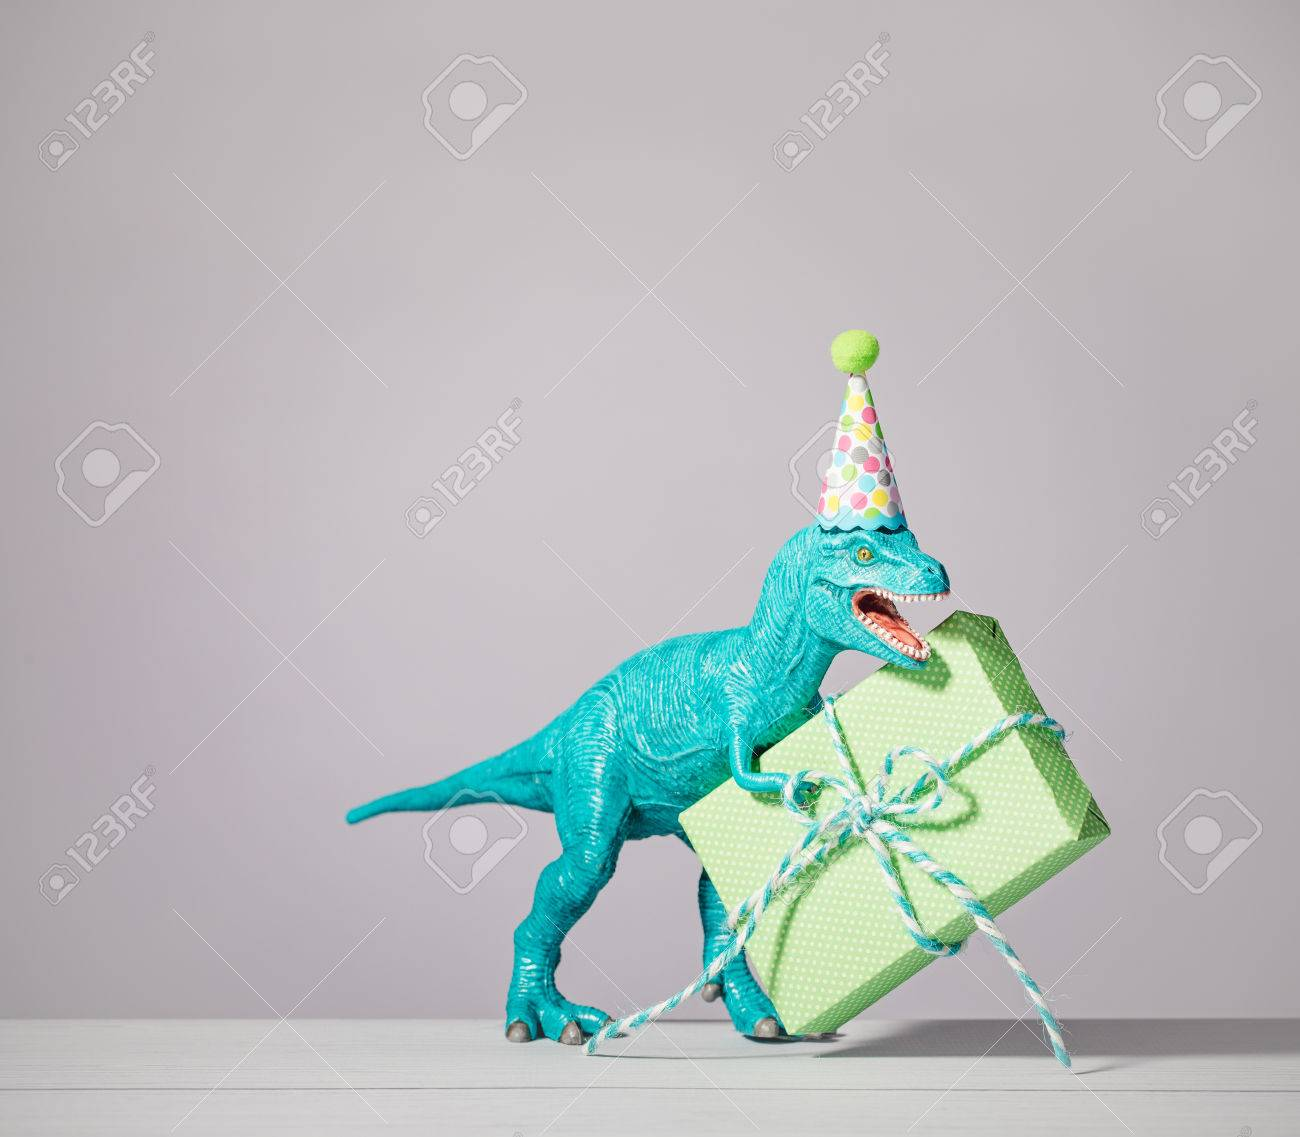 T Rex Dinosaur Toy With Birthday Hat Holding Gift On A Light Stock